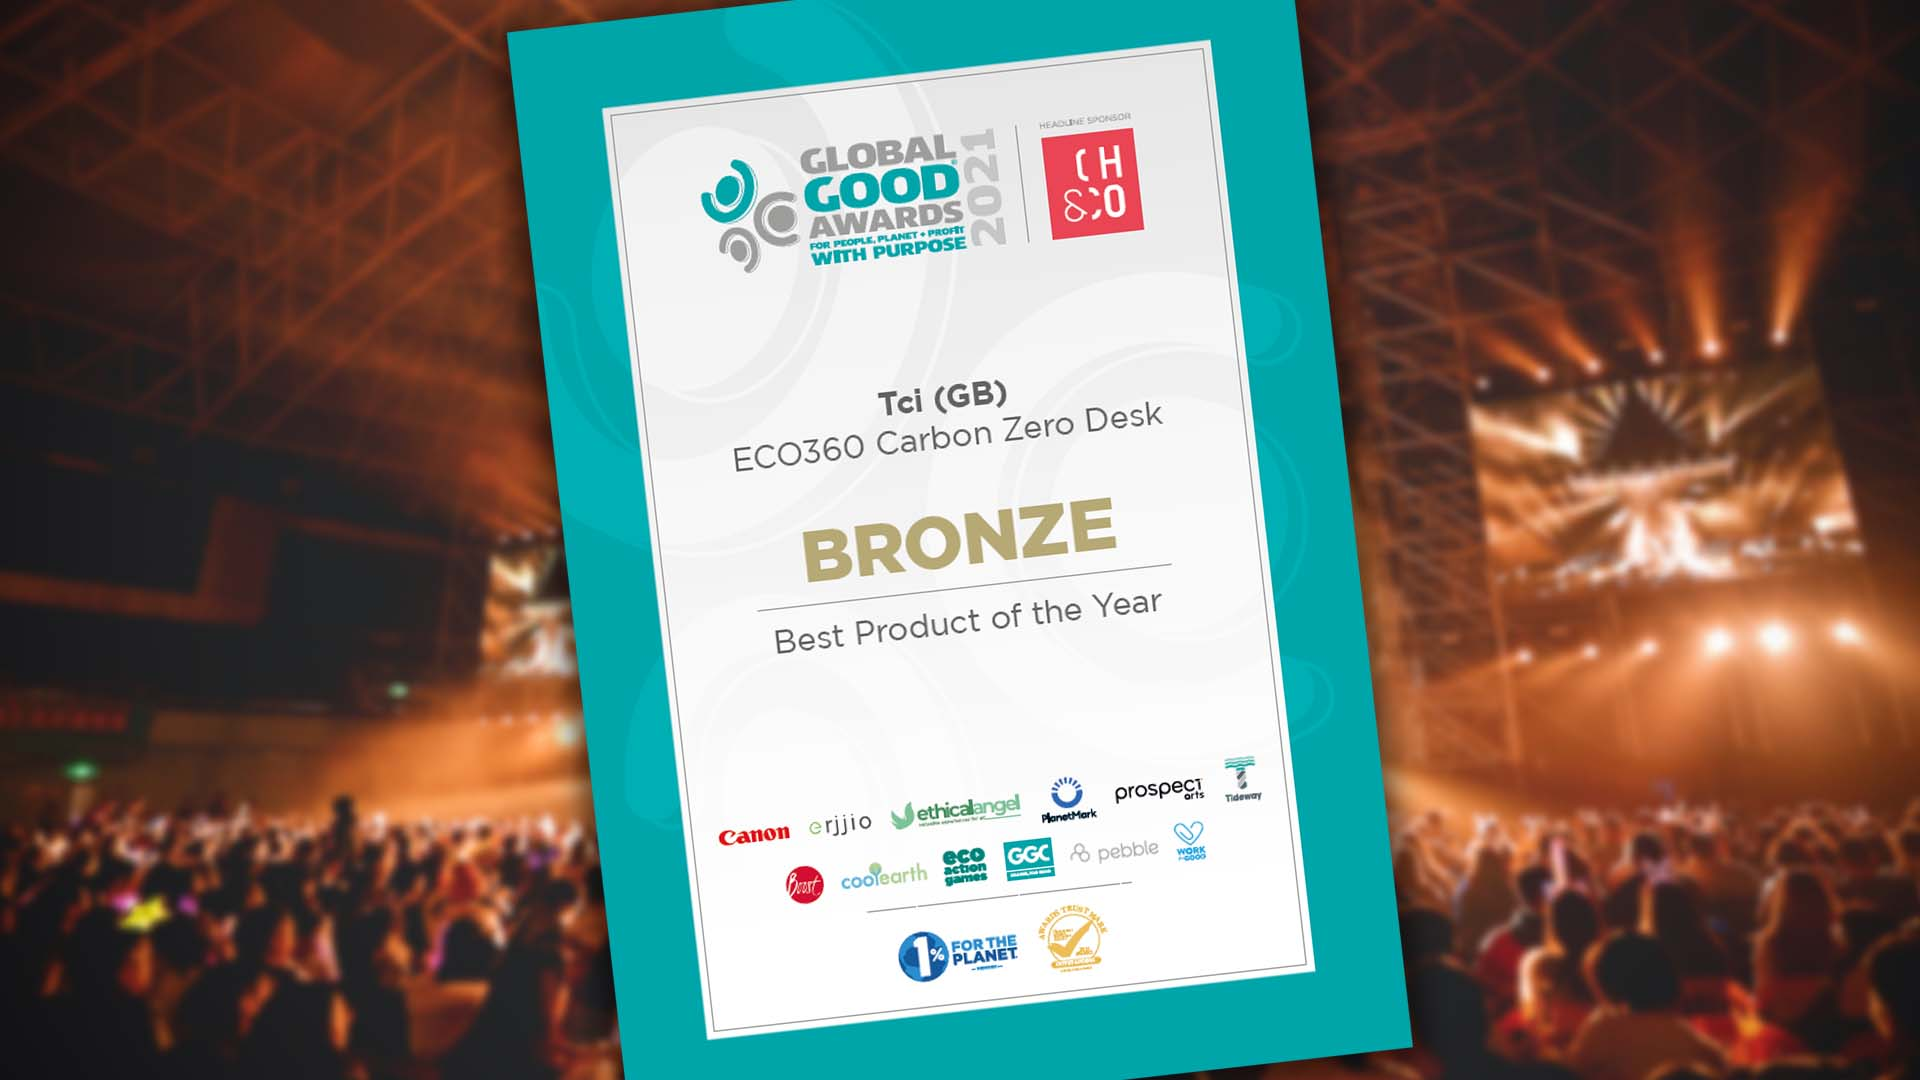 ECO360® wins bronze at the Global Good Awards